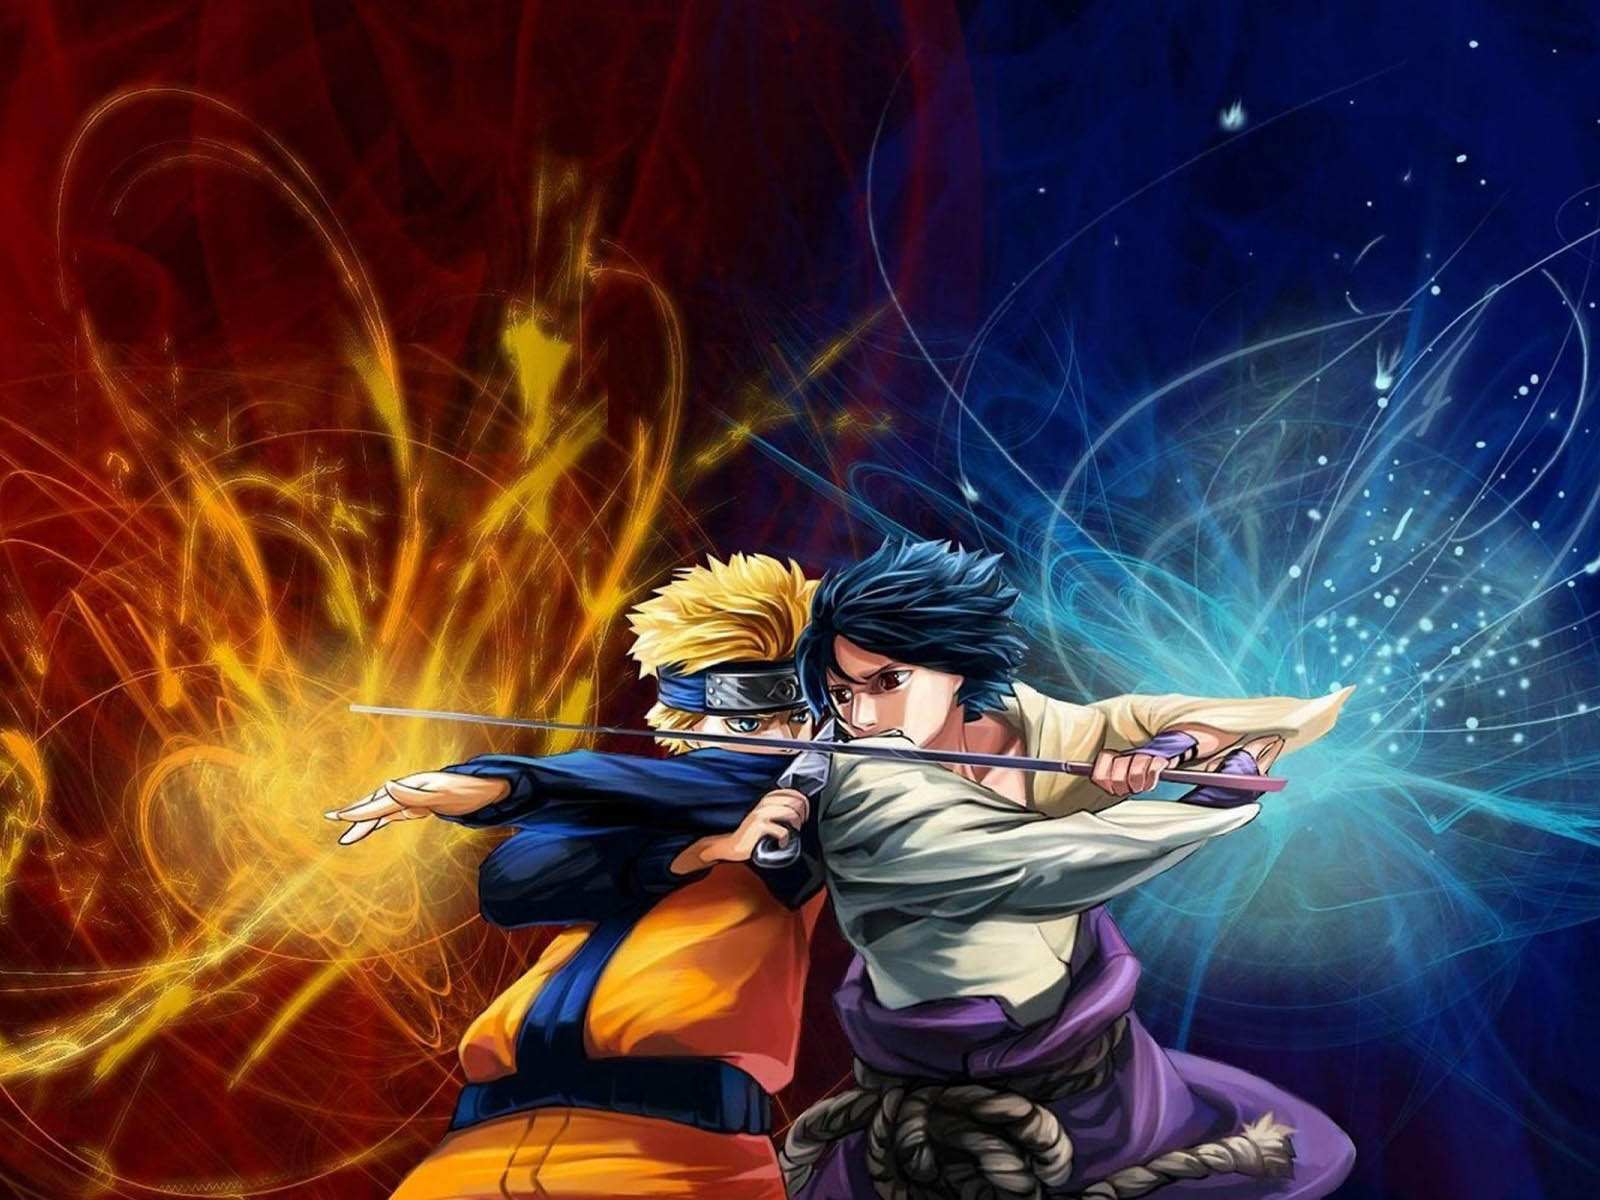 Tag Naruto Shippuden Wallpapers Backgrounds Photos Picturesand 1600x1200